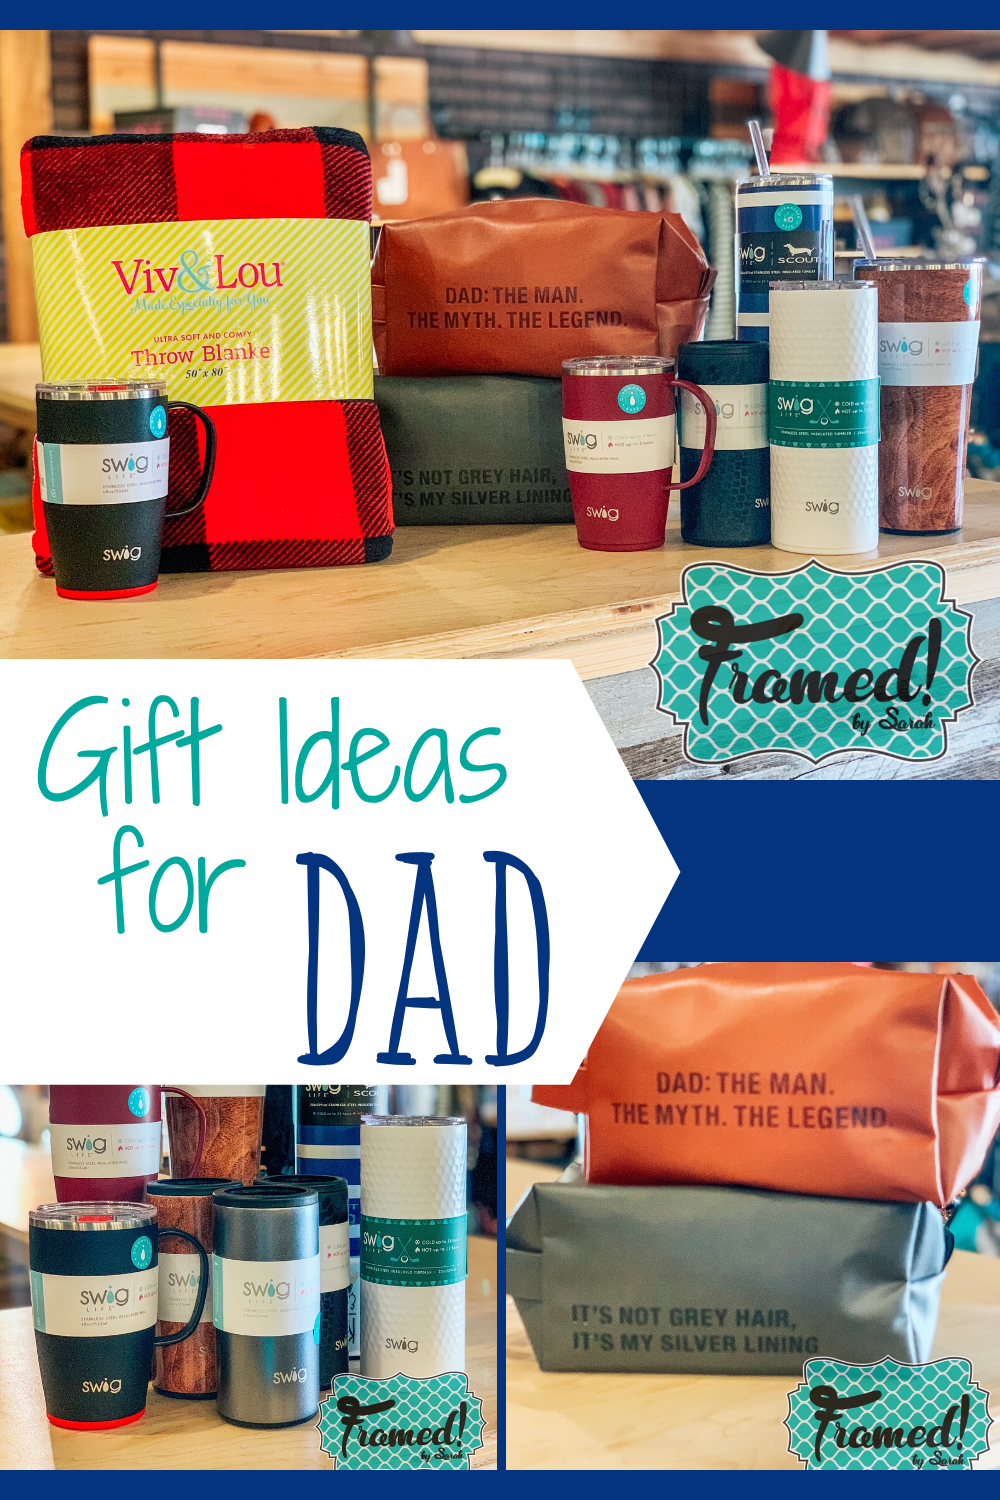 Our Favorite Gift Ideas for Dad! in 2020 | Favorite things gift, Personalized fathers day gifts ...